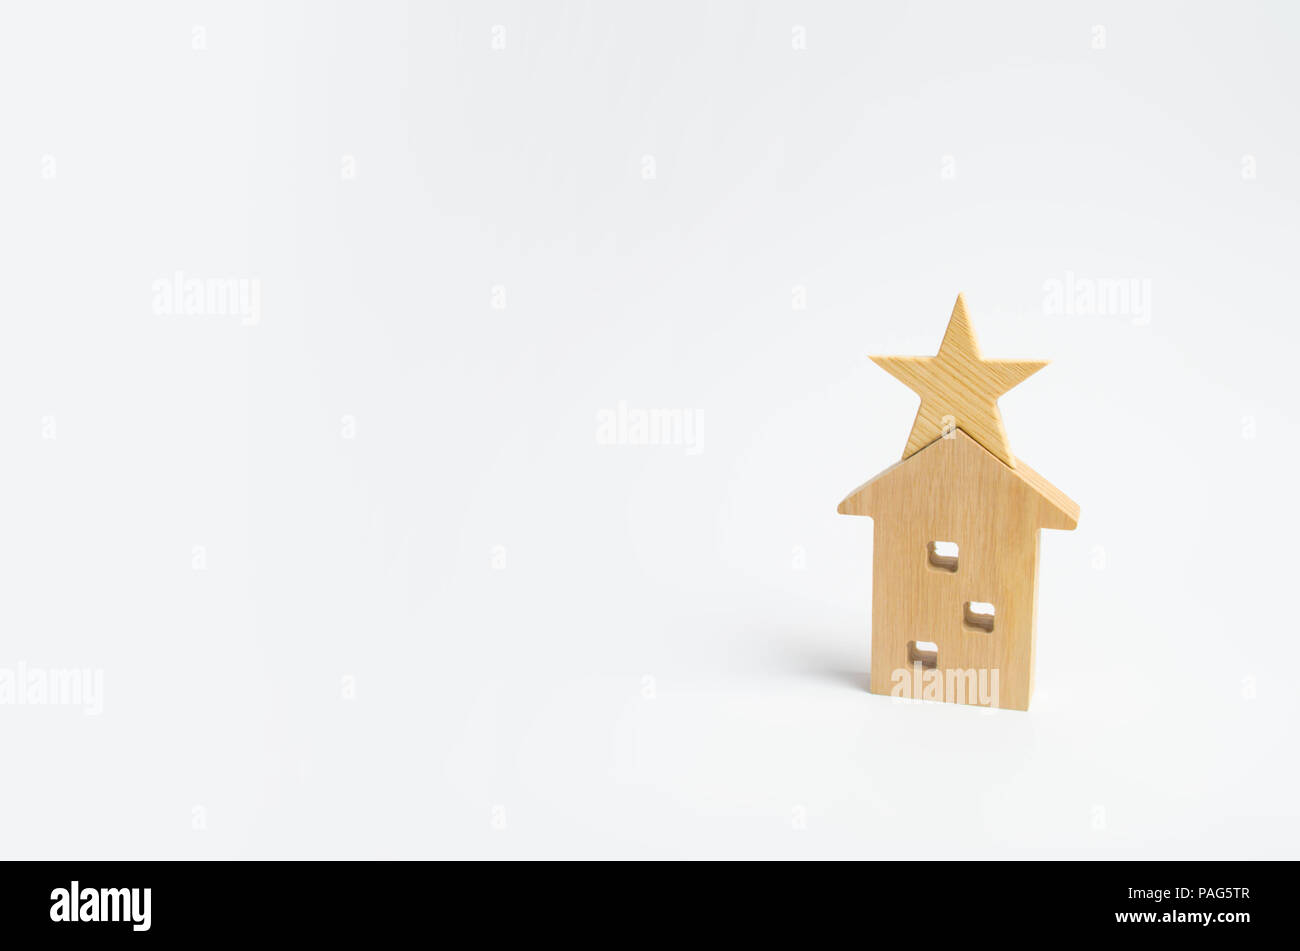 Wooden house with a star on a white background. The concept of luxury real estate. Buying and selling apartments. Mark of distinction. Self-management - Stock Image